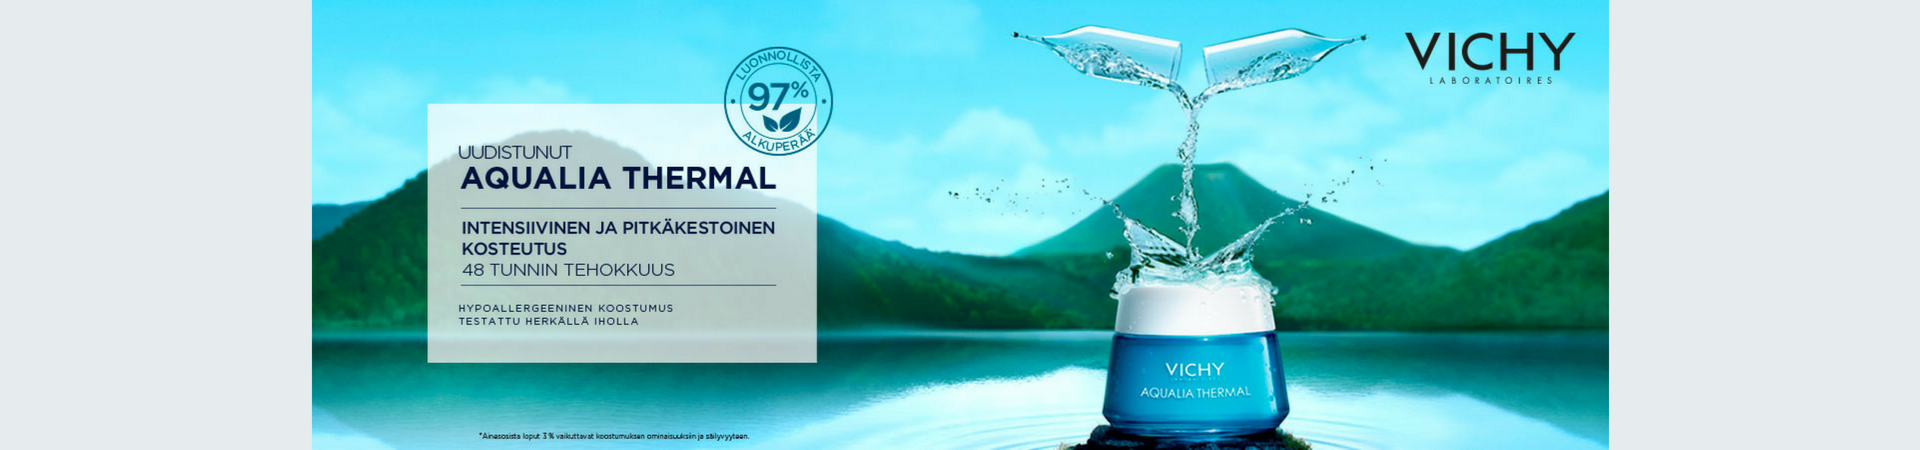 uudistunut vichy aqualia thermal